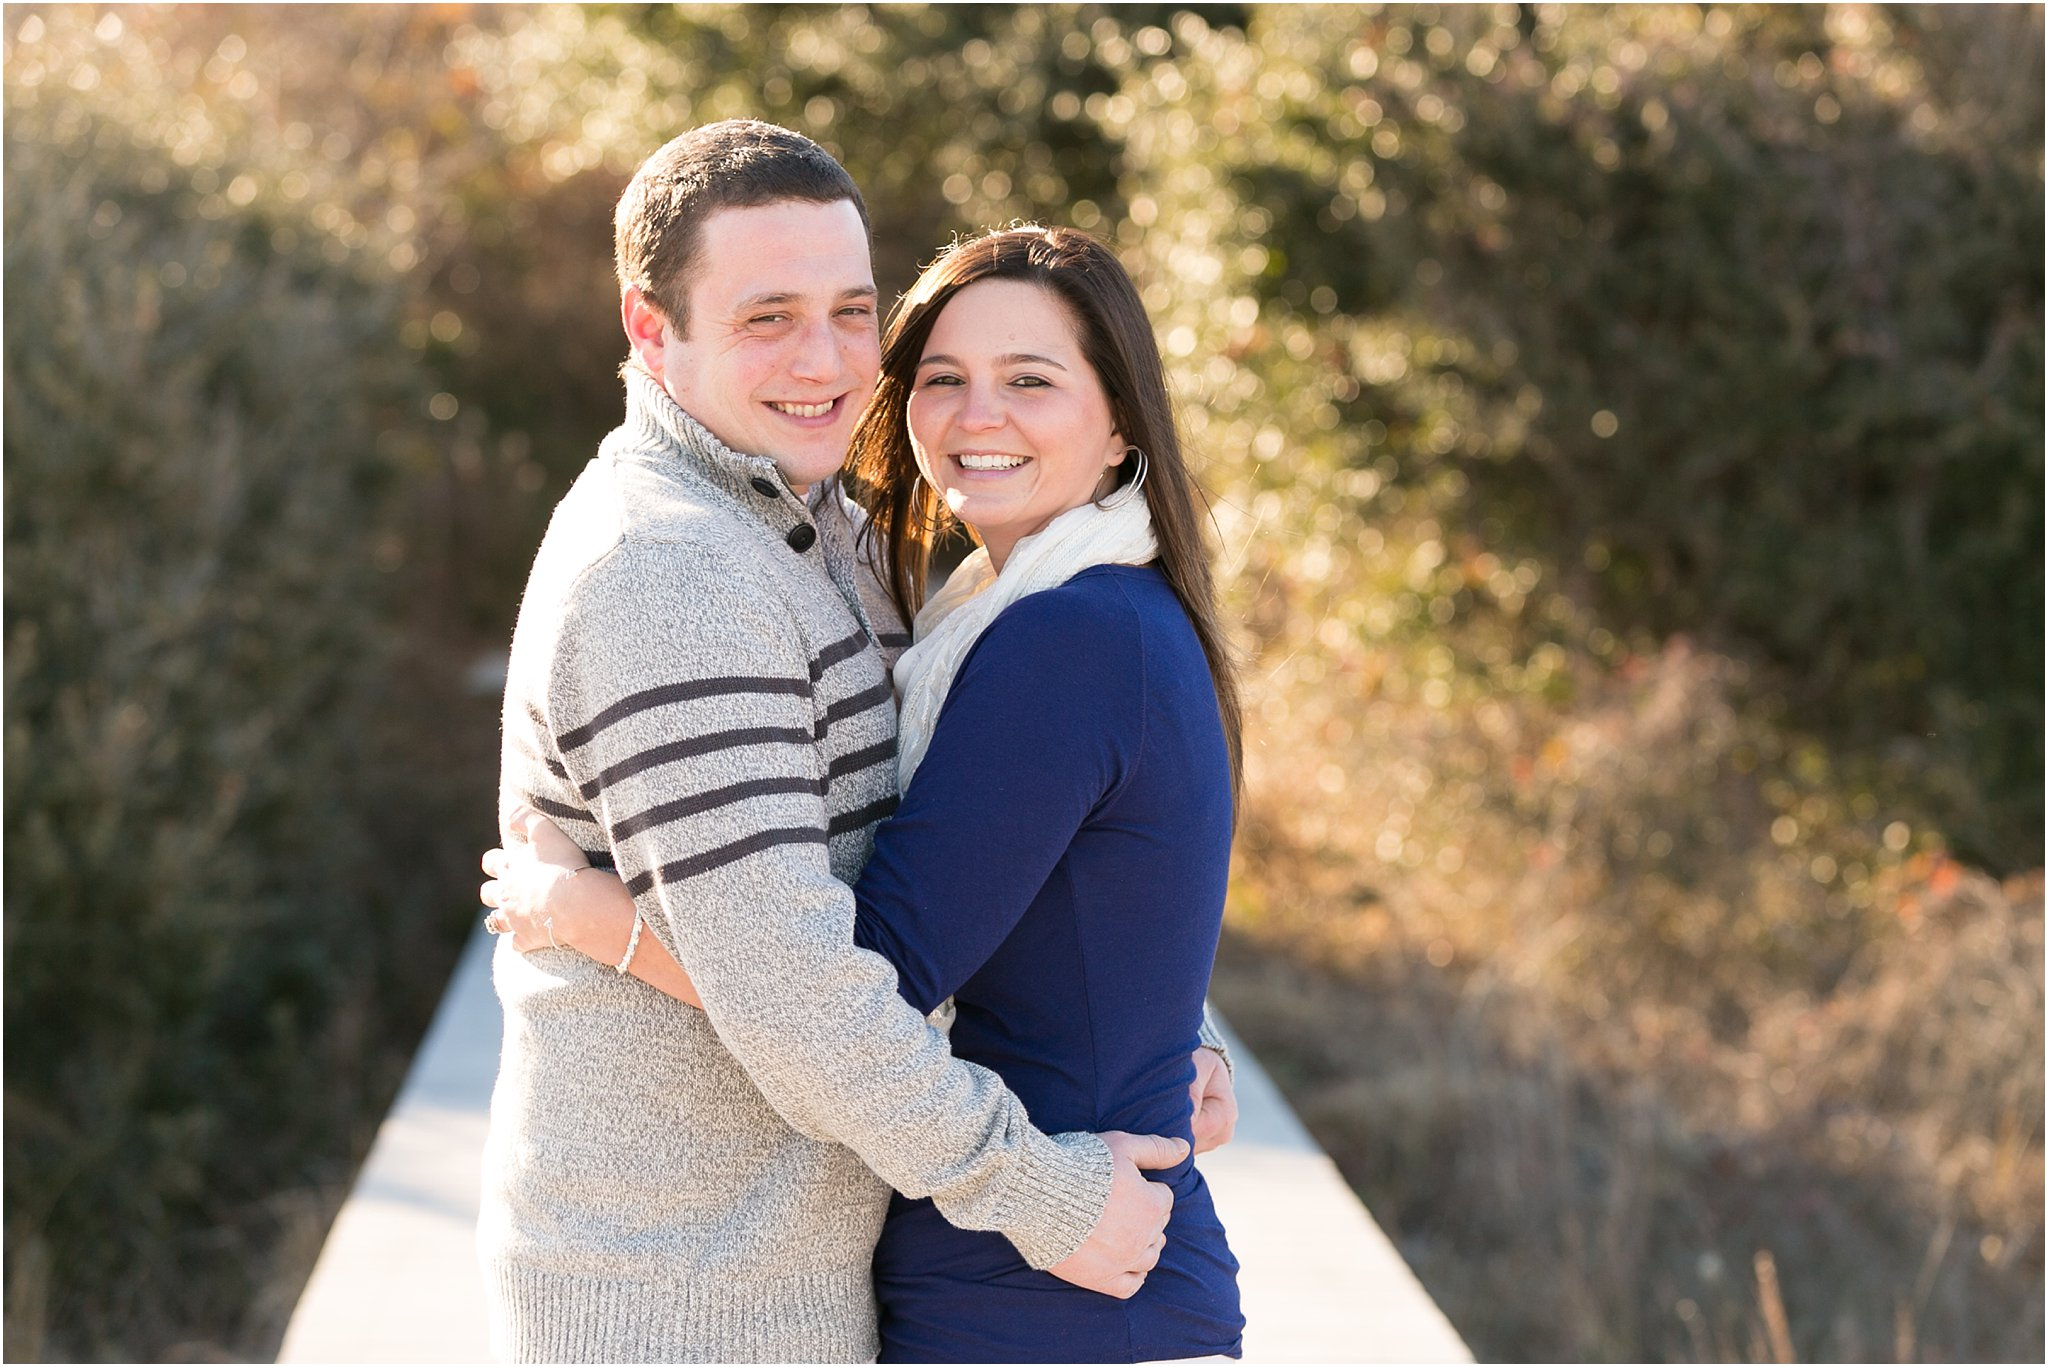 jessica_ryan_photography_winter_engagements_virginia_beach_oceanfront_virginia_0741